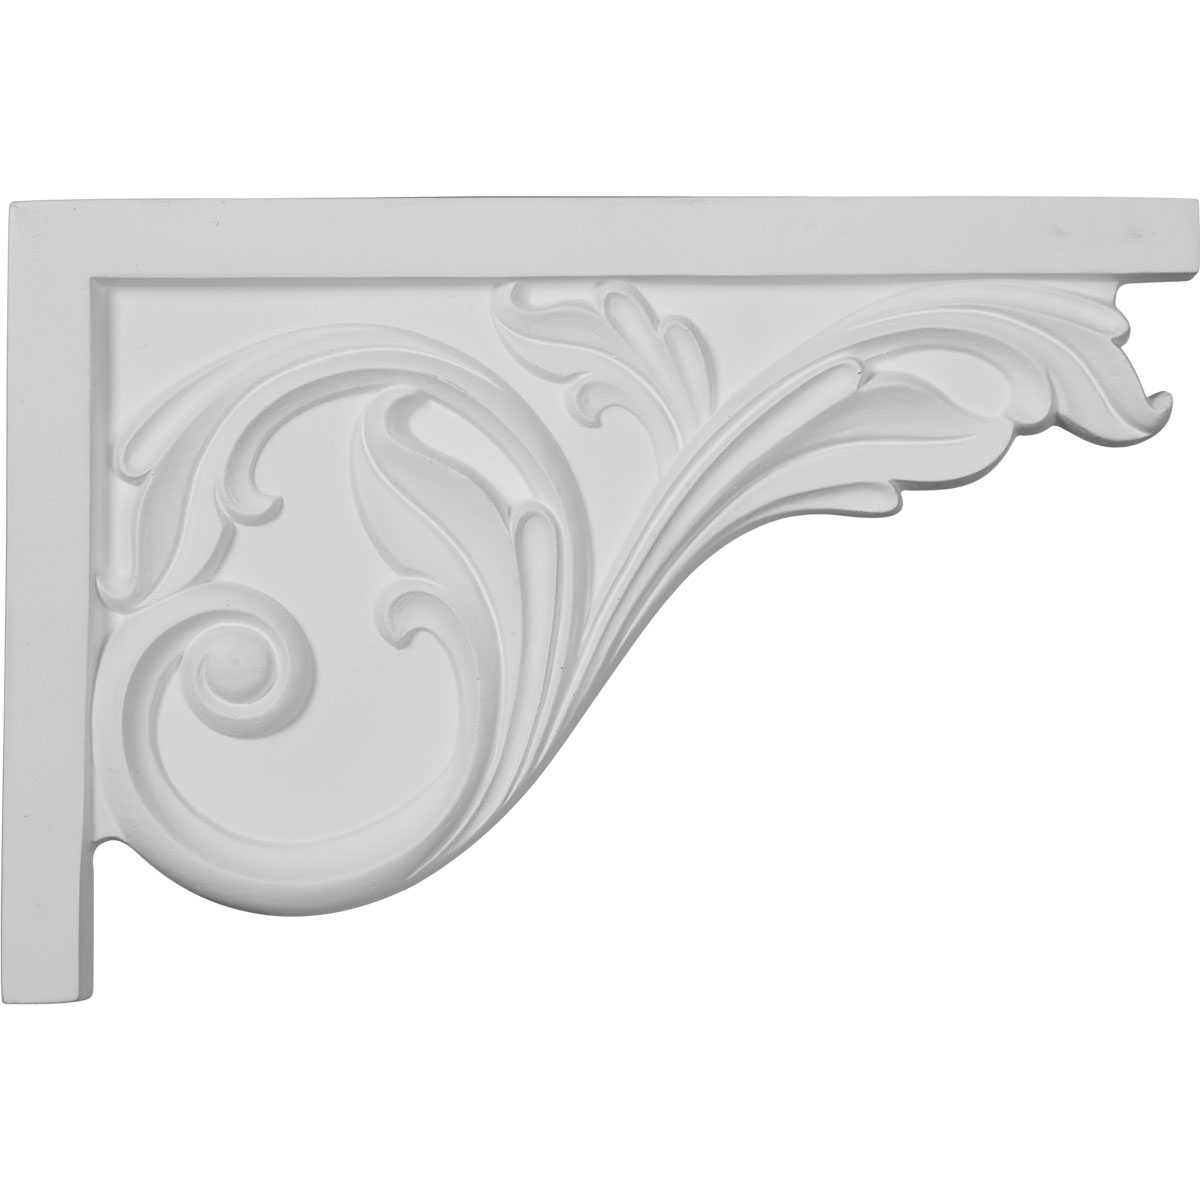 Ekena Millwork Acanthus 7 3/4''H x 11 3/4''W x 3/4''D Large Stair Bracket